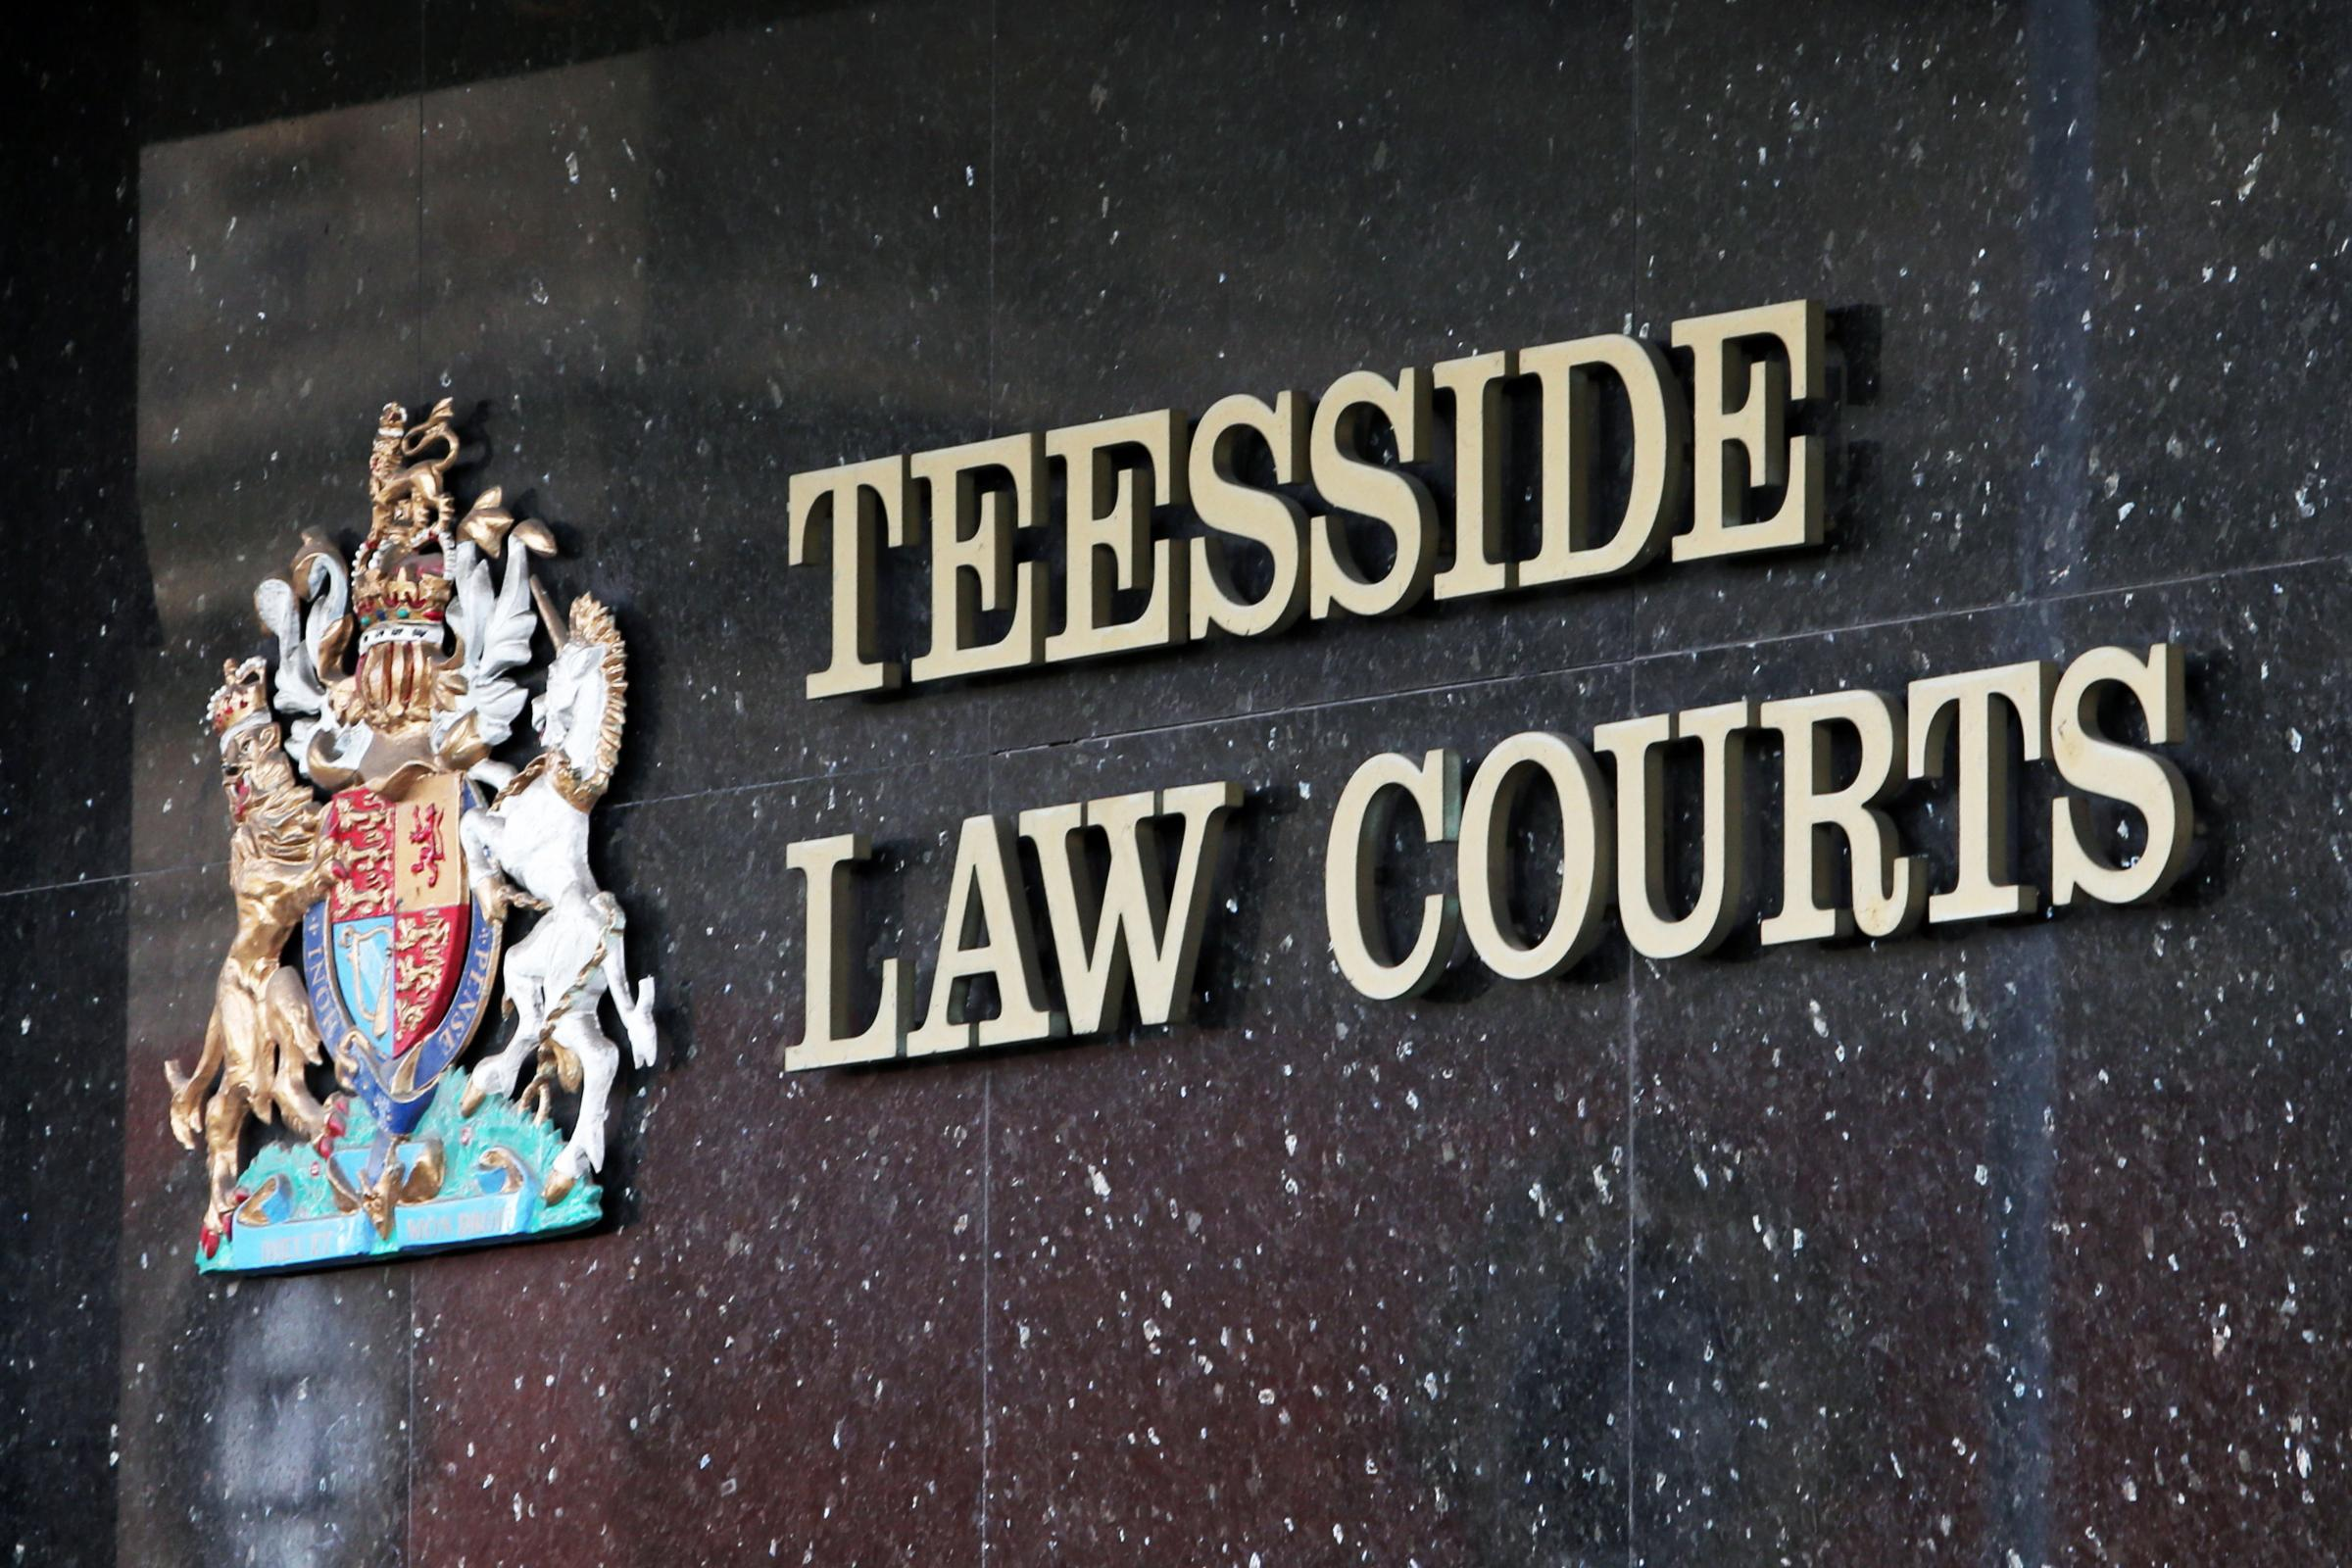 Teesside Law Courts where the inquest took place